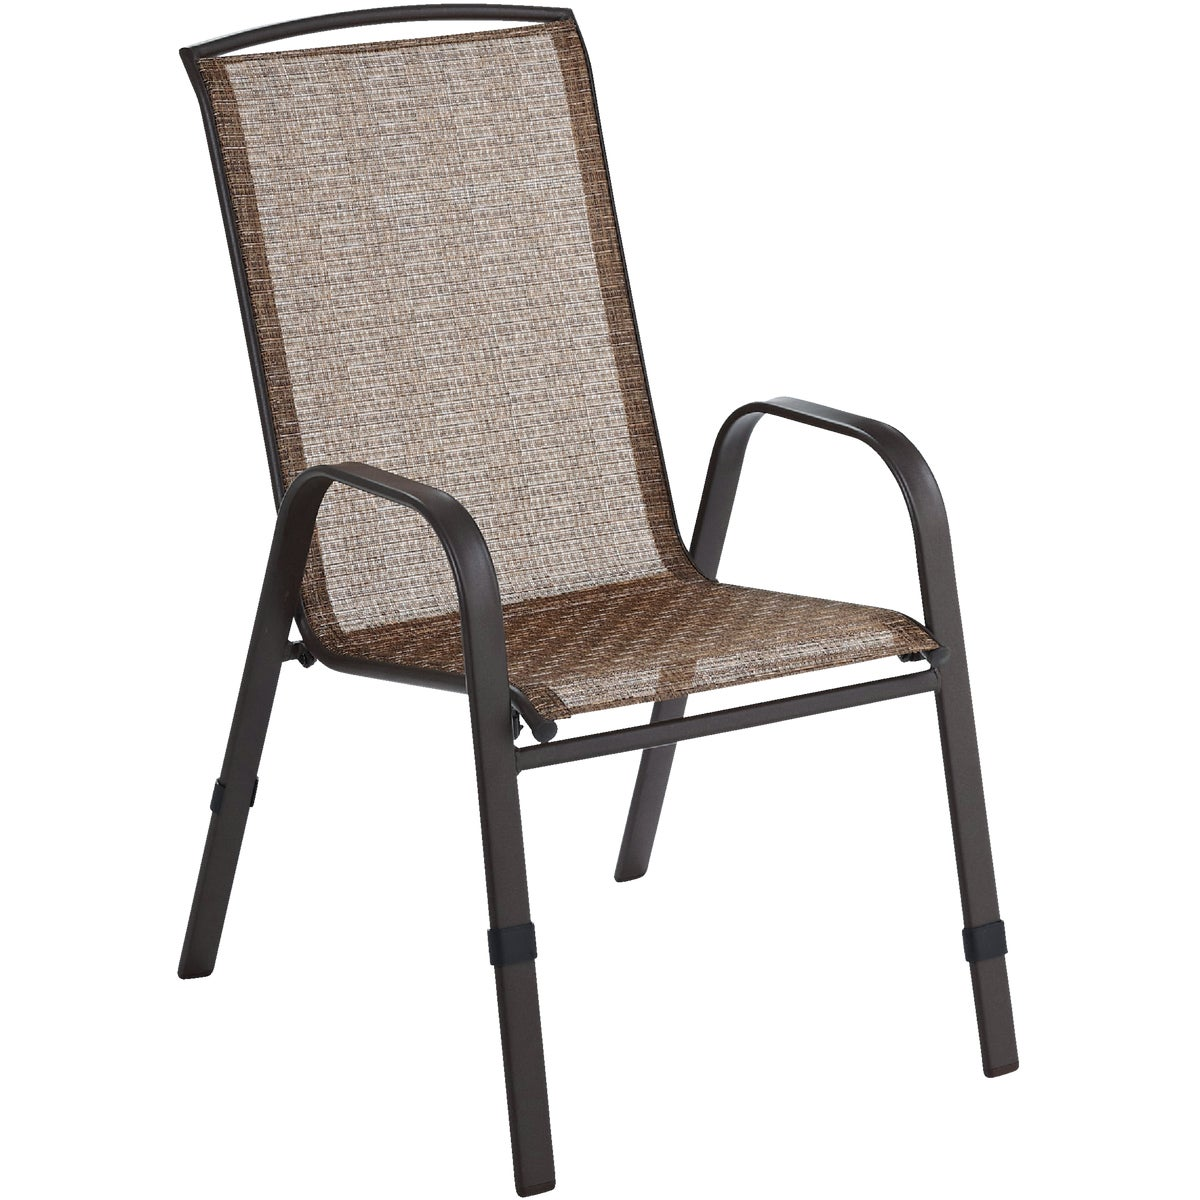 BROWN SLING STACK CHAIR - SL-4237BE by Do it Best